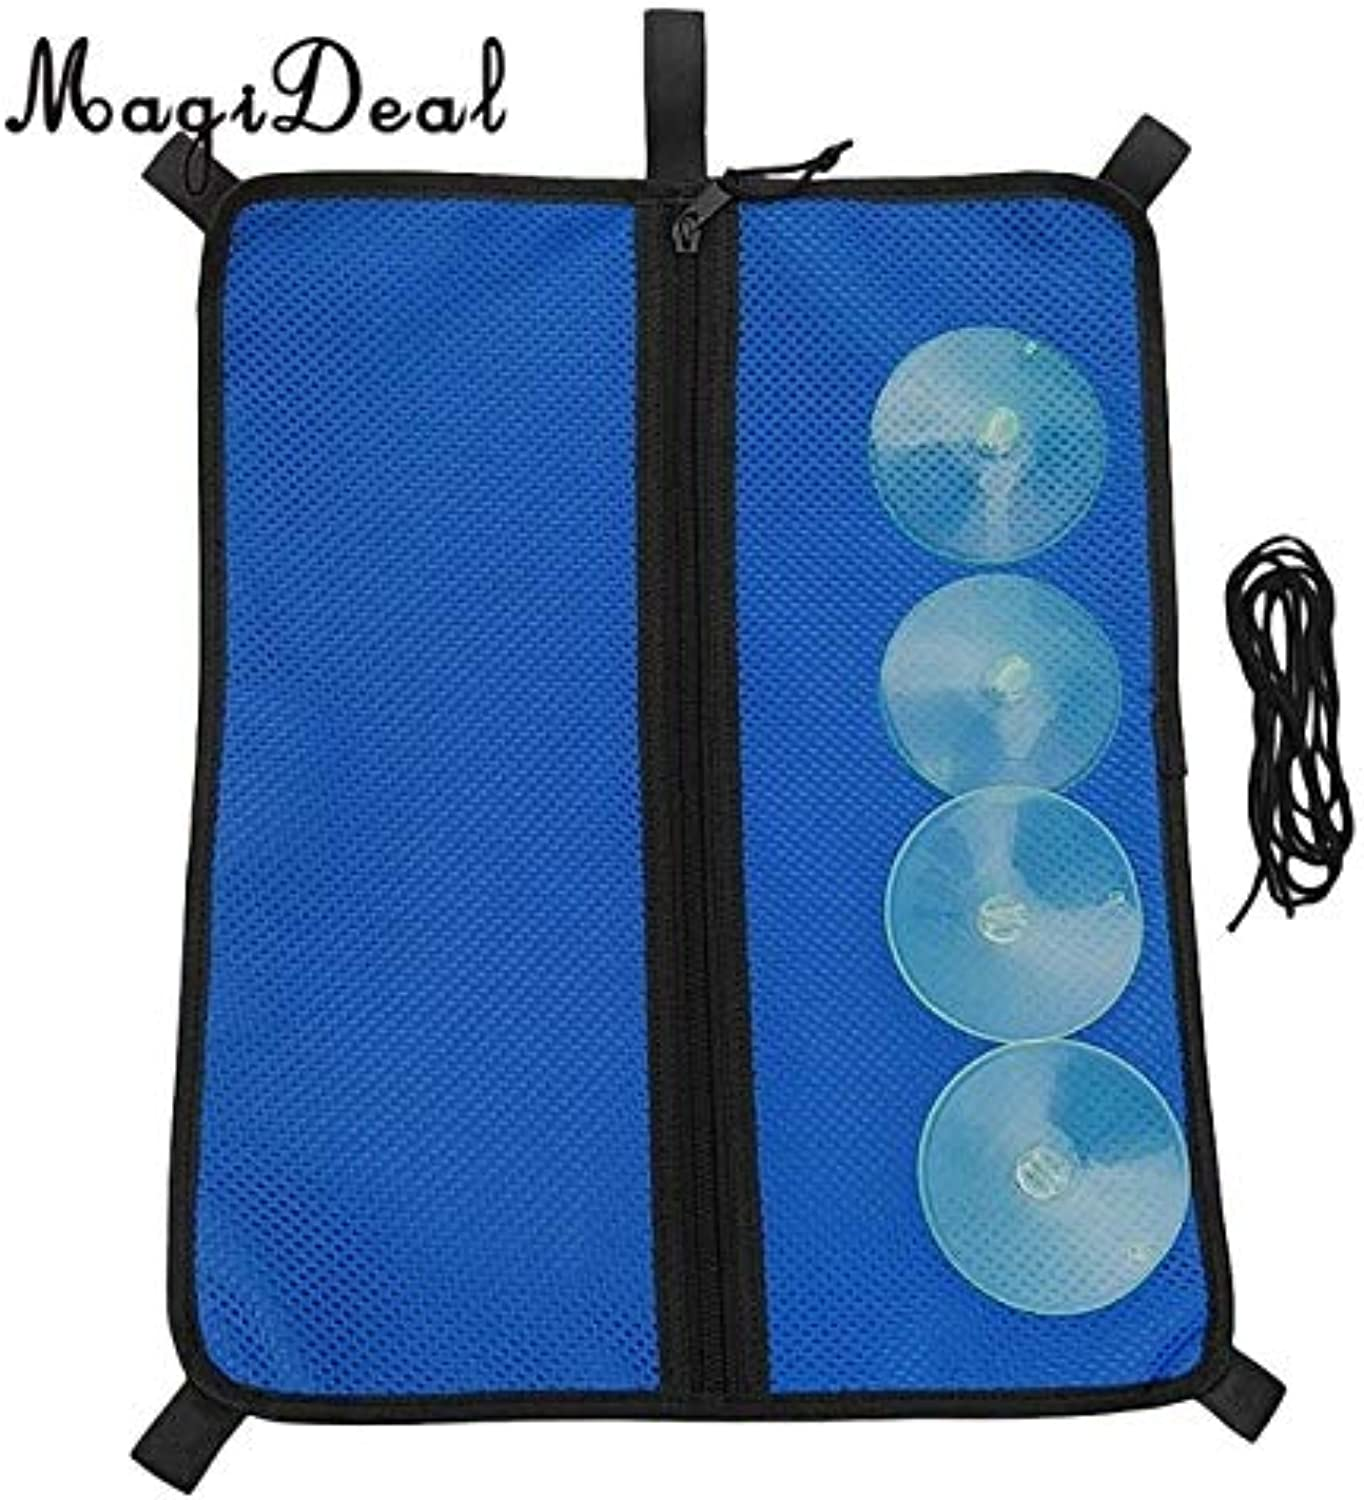 Value-5-StarSUP Mesh Paddleboard Storage Bag with Suction Cups & Elastic Bungee Rope for Sunscreen Diving Swimming Goggles Water Bottles